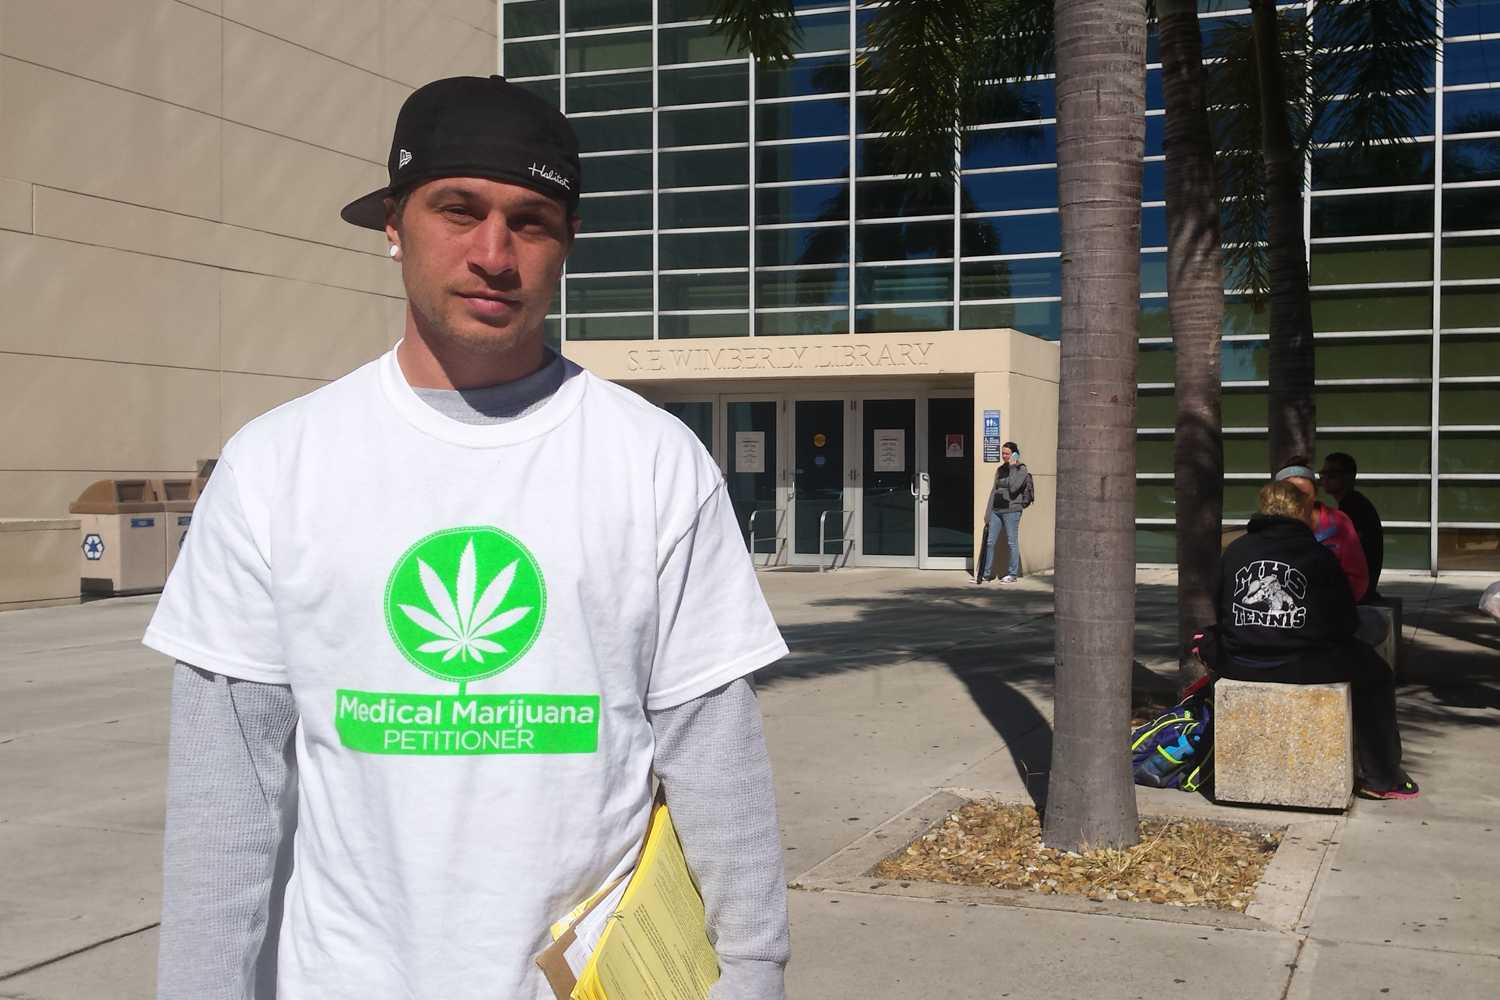 Mike McSherry collects signatures for petitions to place medical marijuana and solar power initiatives on the 2016 election ballot in Florida. Photo by Dylan Bouscher   Contributing Photographer